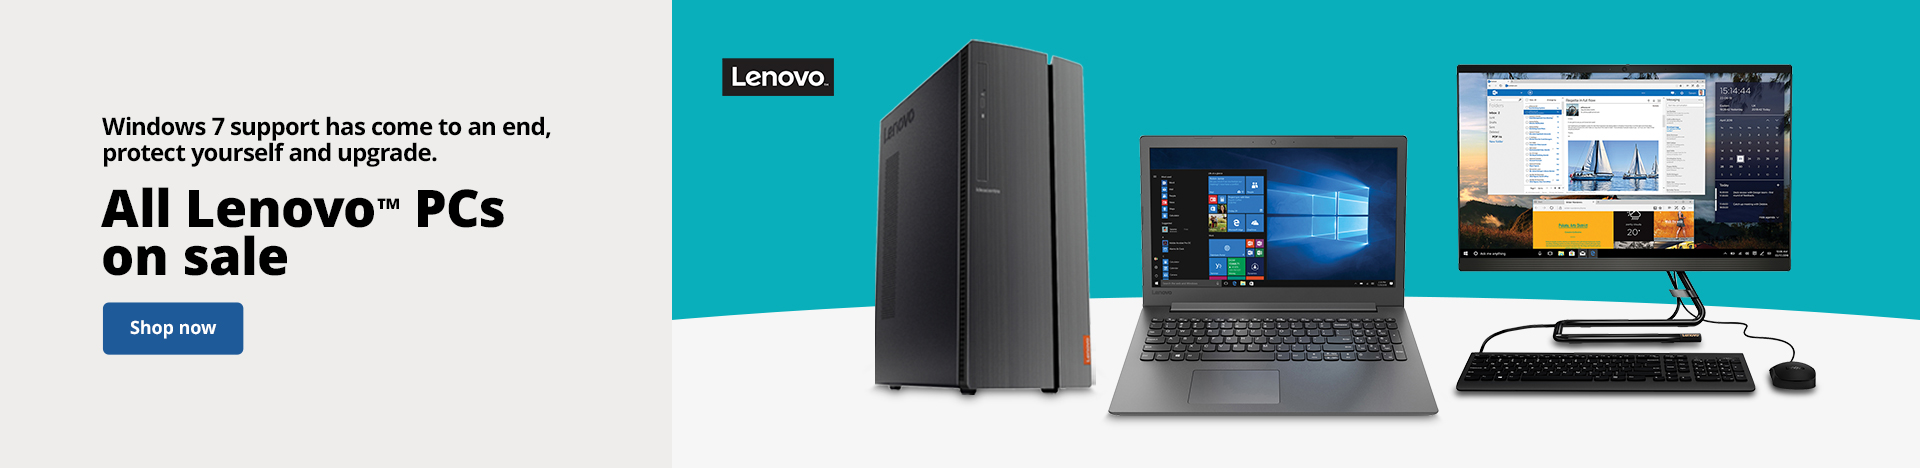 Windows 7 support has come to an end, protect yourself and upgrade | All Lenovo™ PCs on sale